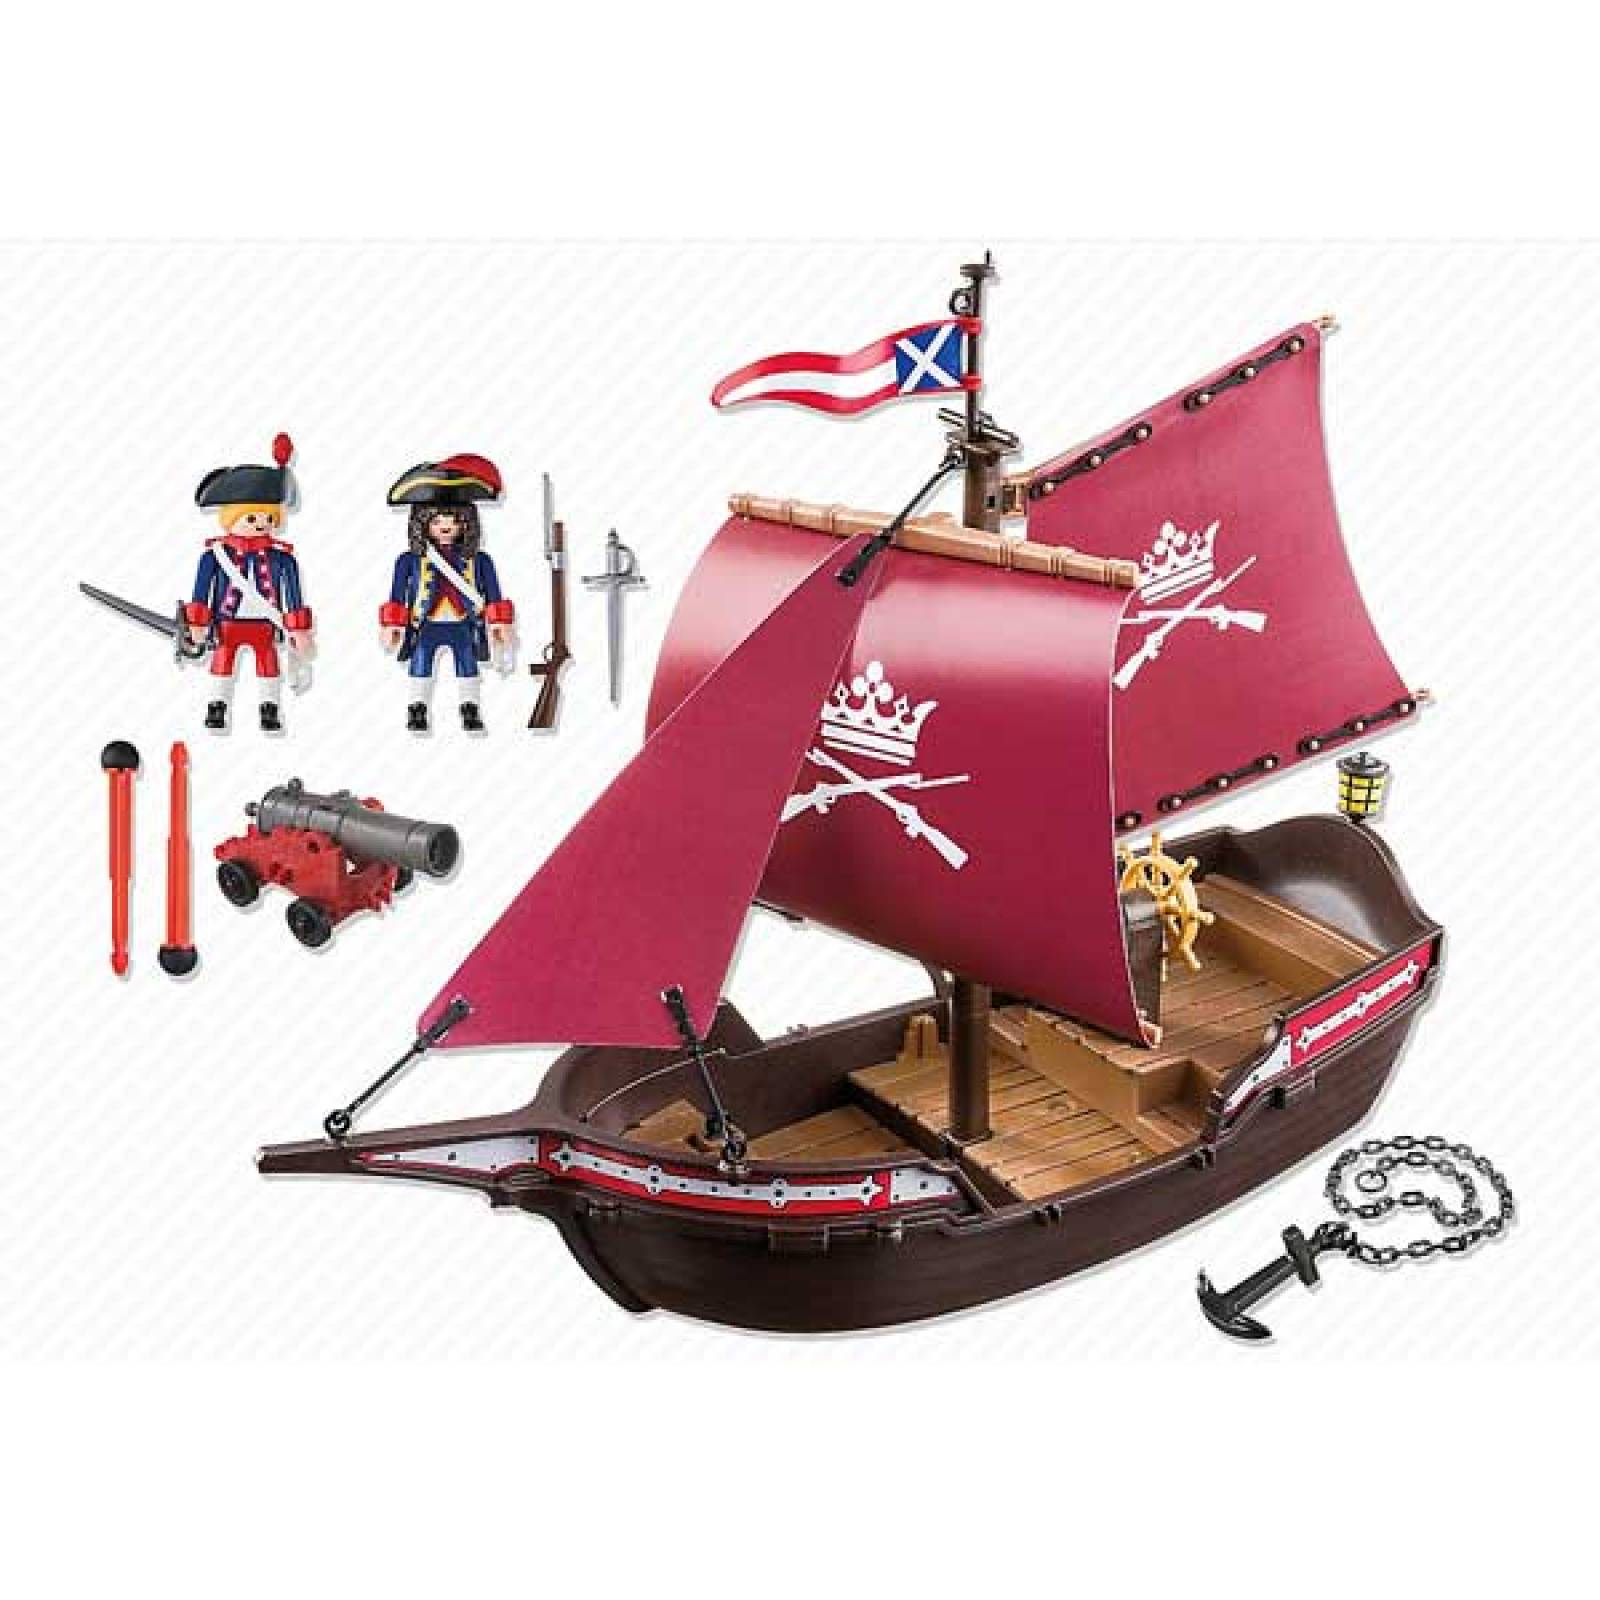 Pirate Soldiers' Patrol Cannon Boat Playmobil 6681 thumbnails